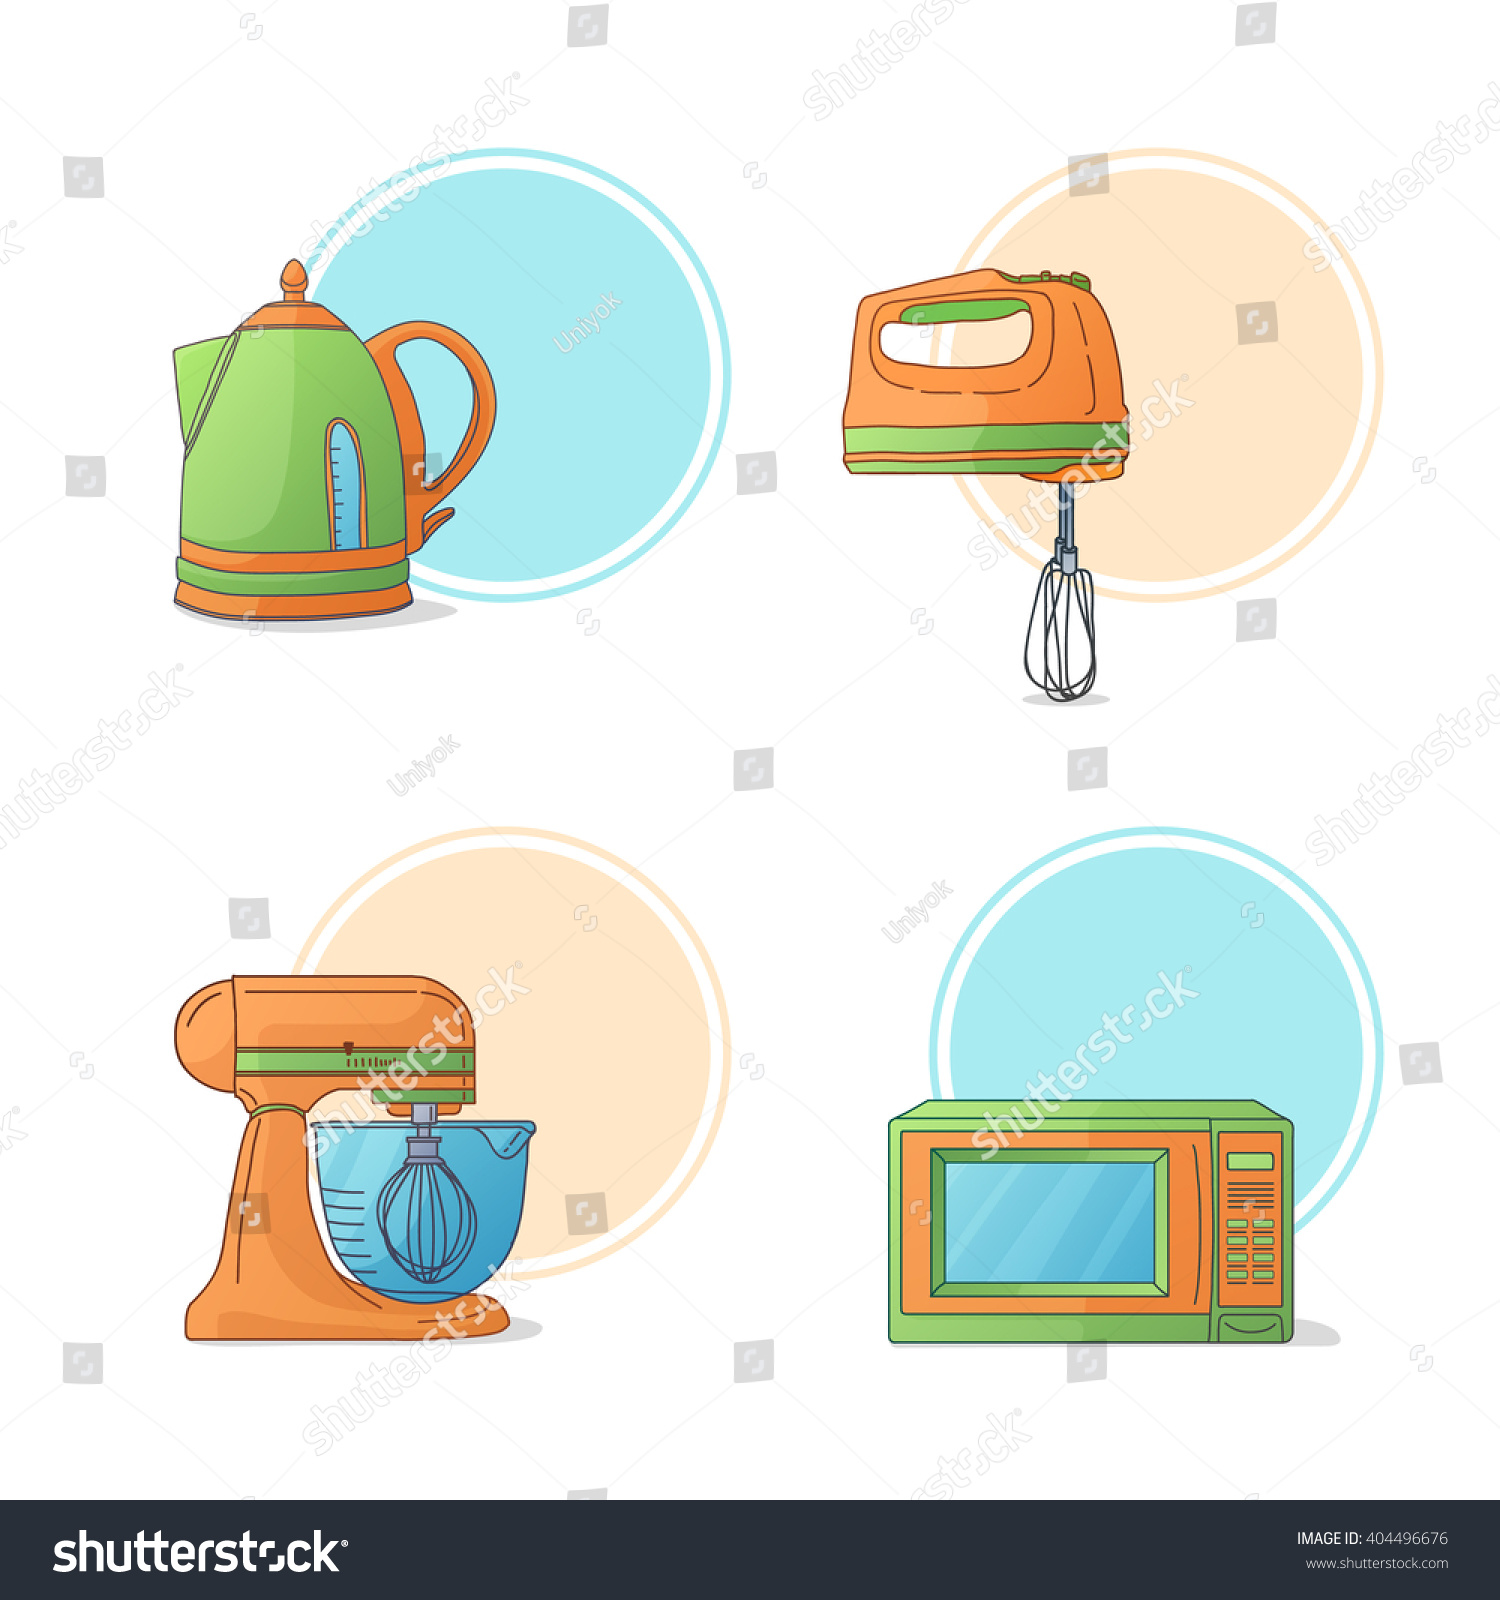 Cartoon kitchen appliances - A Set Of Electrical Appliances Kitchen Appliances In Cartoon Style Icons Stickers